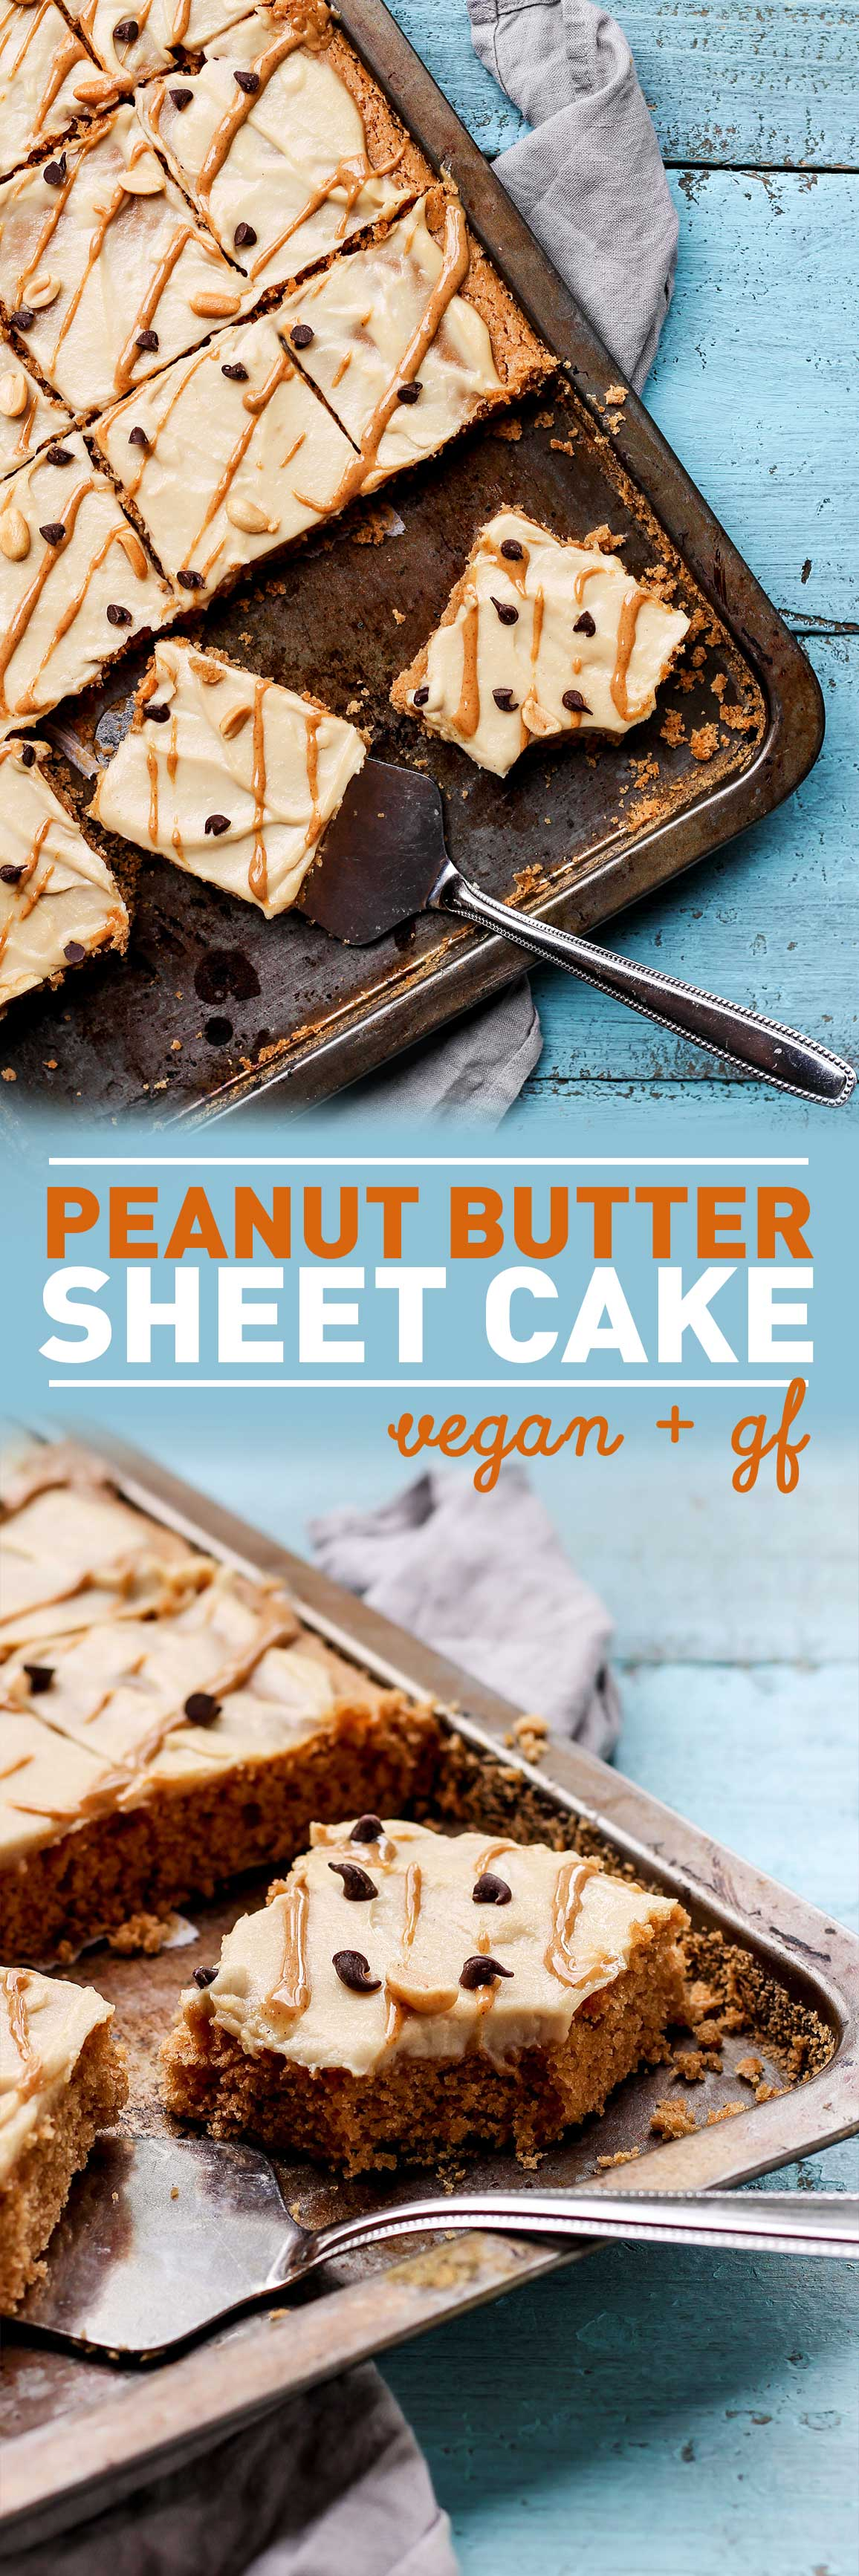 Peanut Butter Sheet Cake (Vegan + GF)